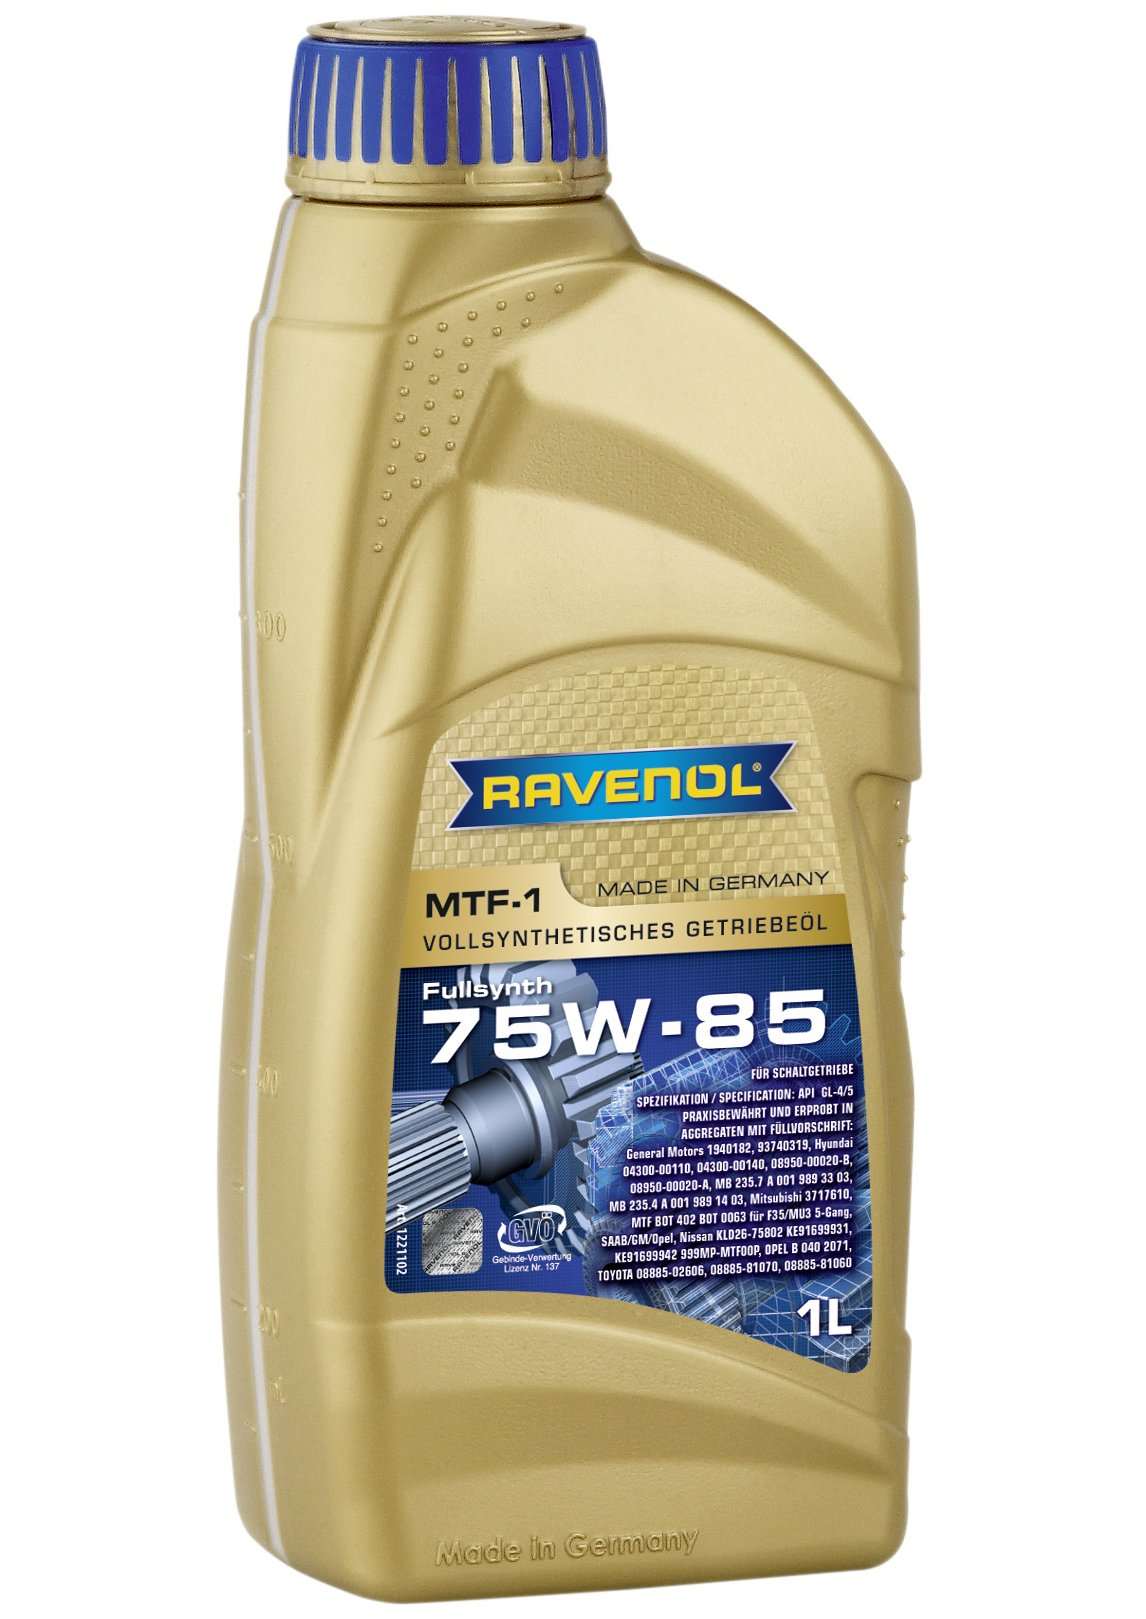 Ravenol J1C1000-001 SAE 75W-85 Manual Transmission Fluid - MTF-1 Full Synthetic API GL-4/GL-5 (1 Liter)